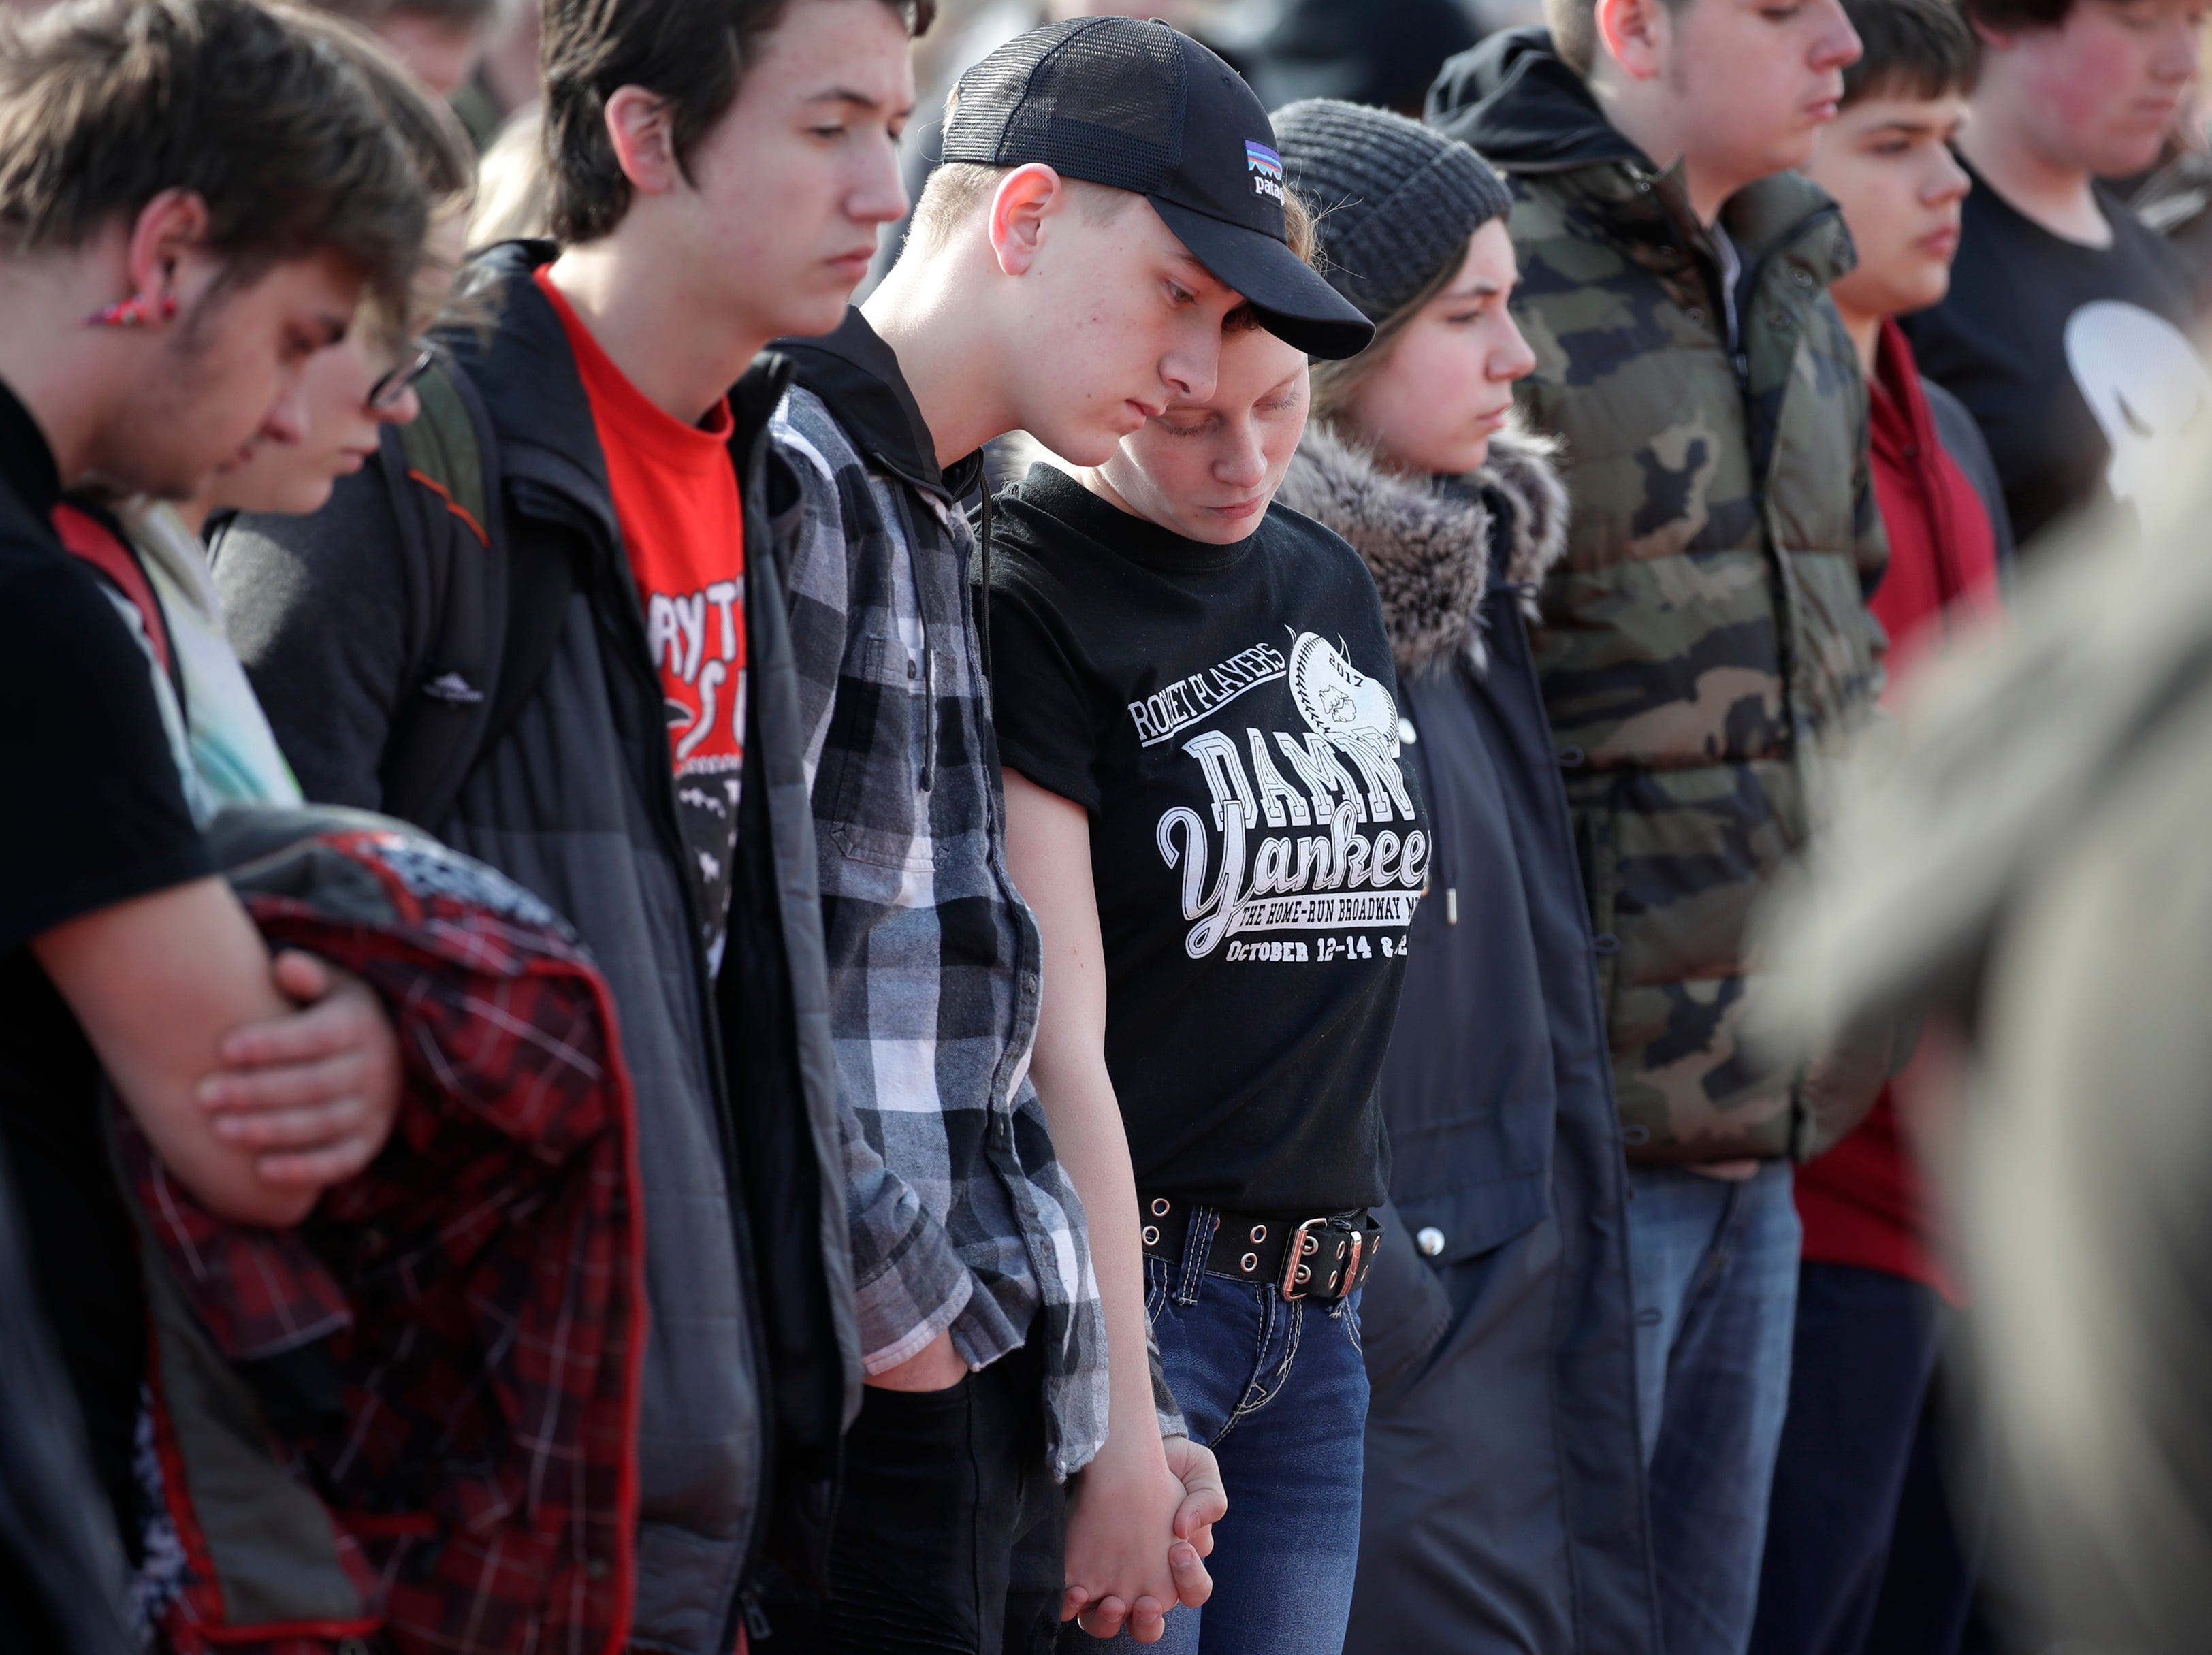 Jackson Blank, a sophomore at Neenah High School, and Brenna Lane, a freshman, hold hands while the names of victims from Marjory Stoneman Douglas High School are read aloud each minute for 17 minutes during National School Walkout Day at Neenah High School Wednesday, March 14, 2018, in Neenah, Wis. 